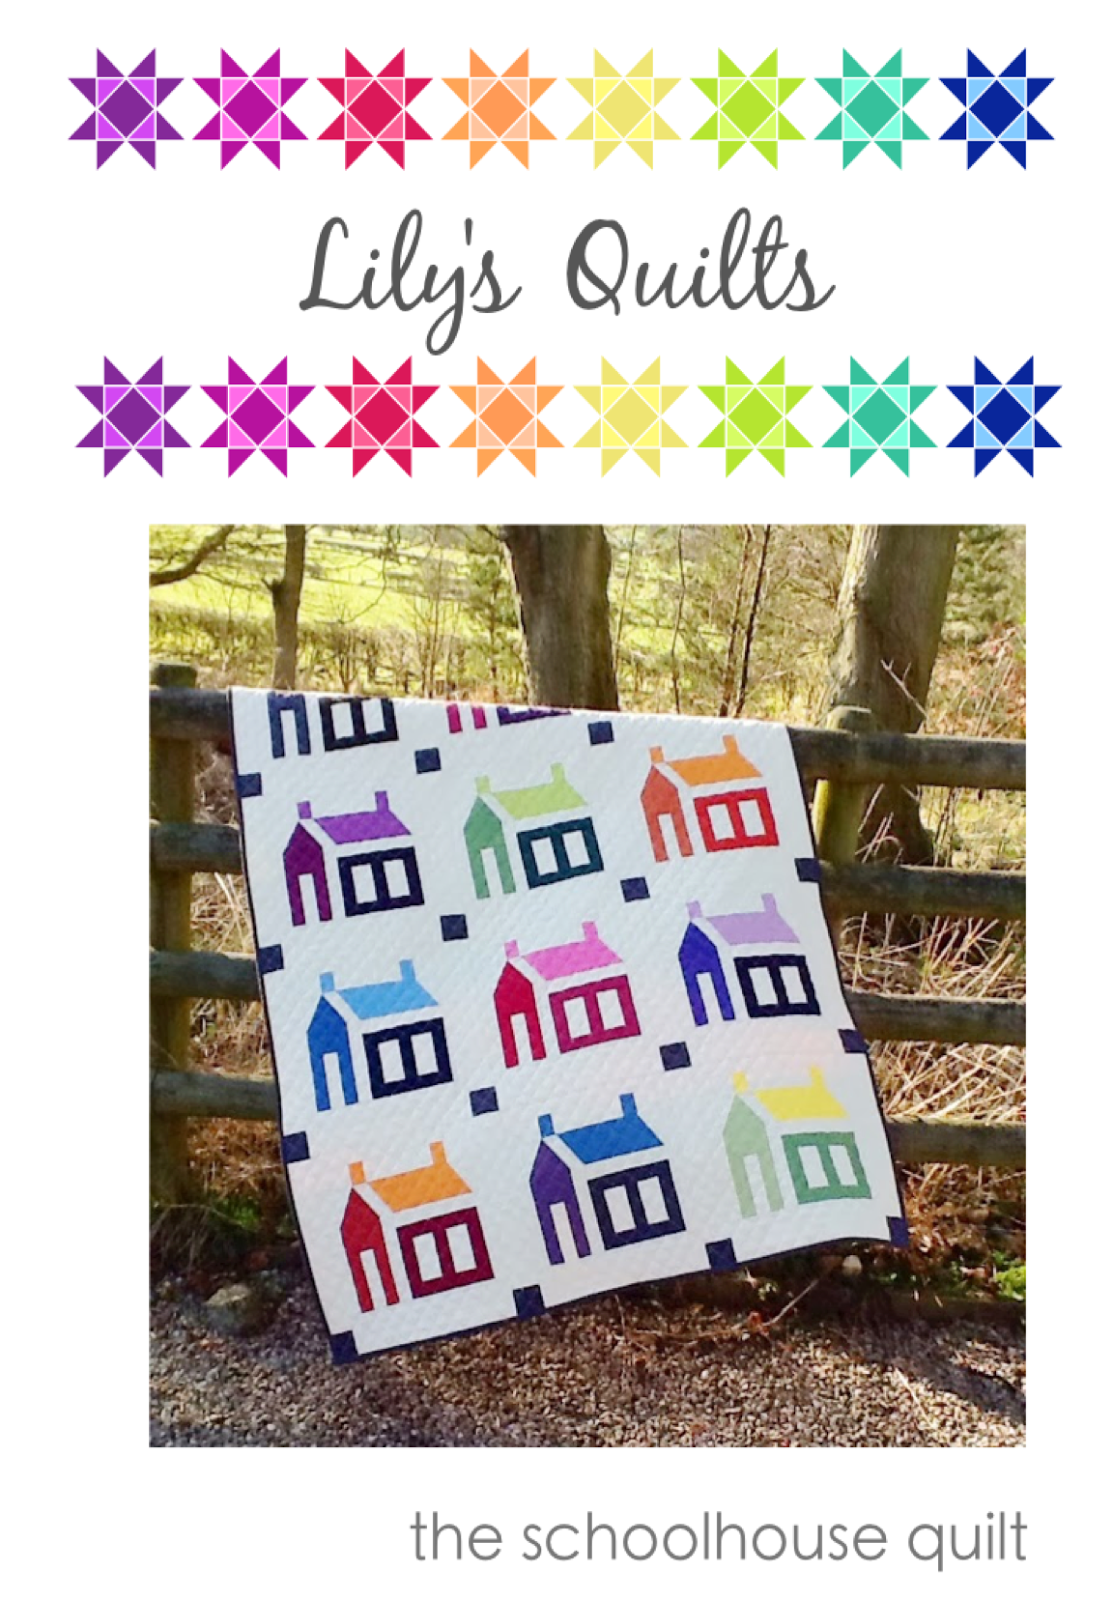 https://payhip.com/lilysquilts